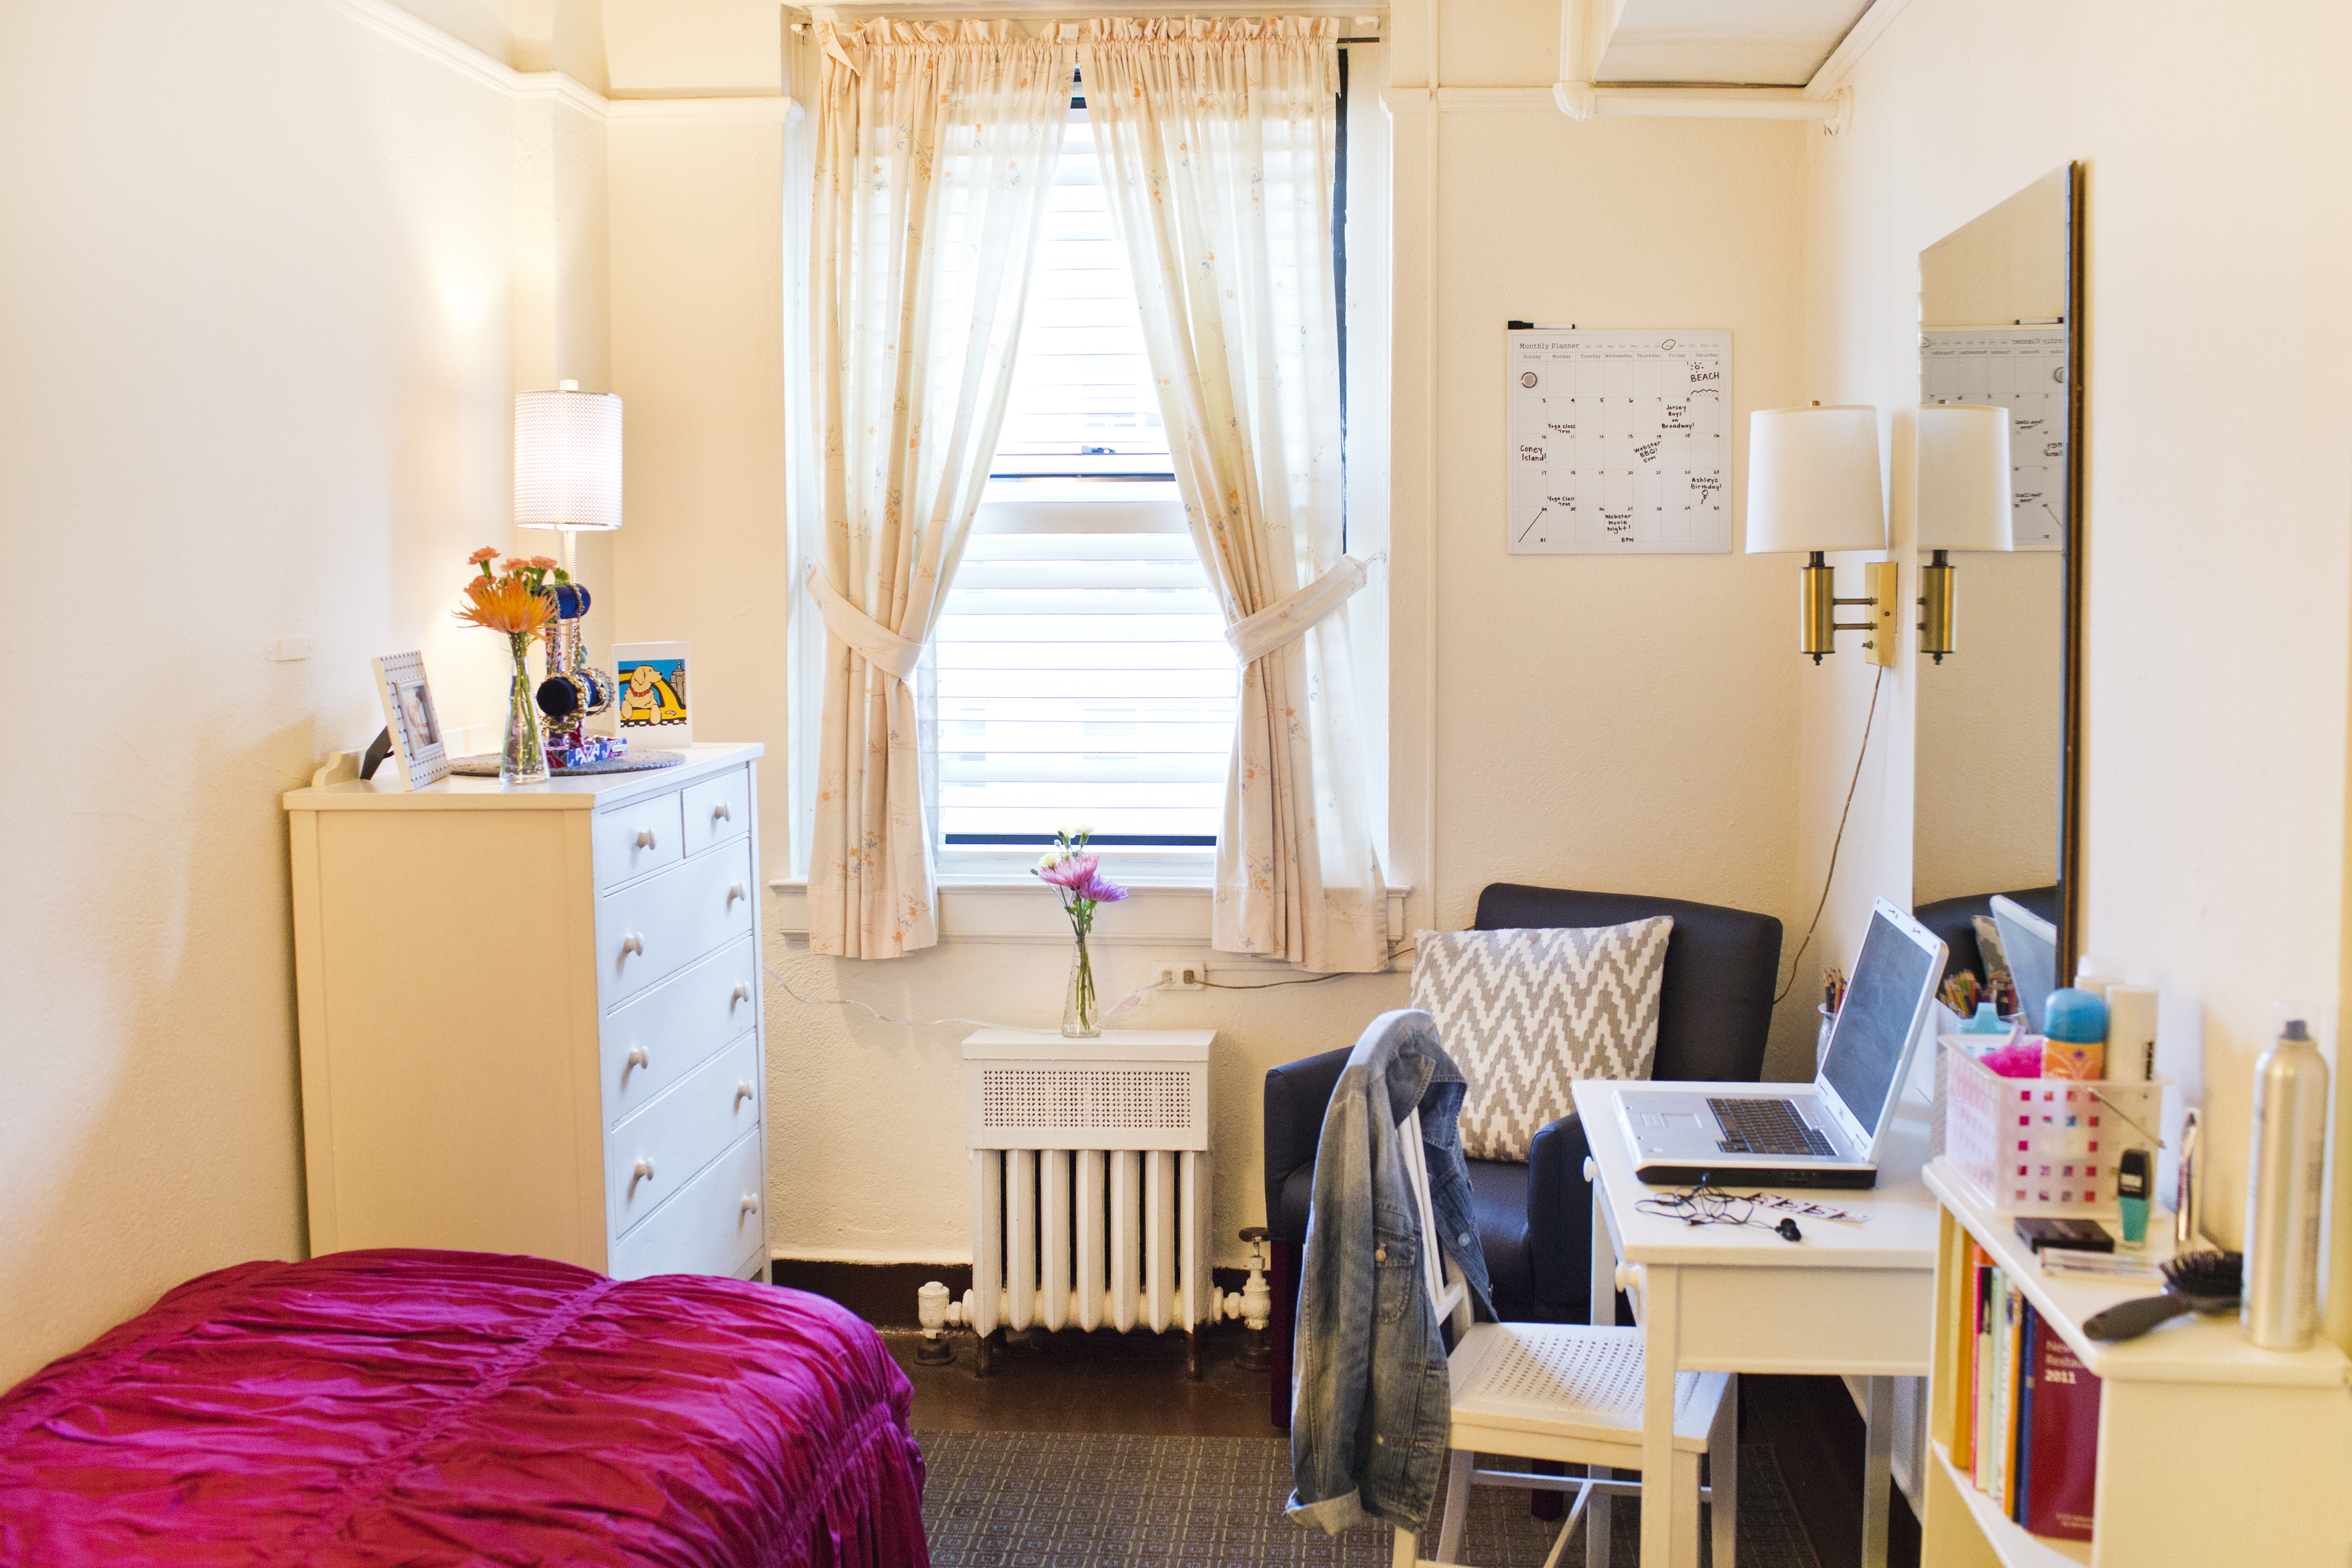 The Bedrooms There Are 375 Resemble Dorm Room Singles And Come Furnished With Beds Linens Dressers Desks Sinks Fairly Sizeable By New York